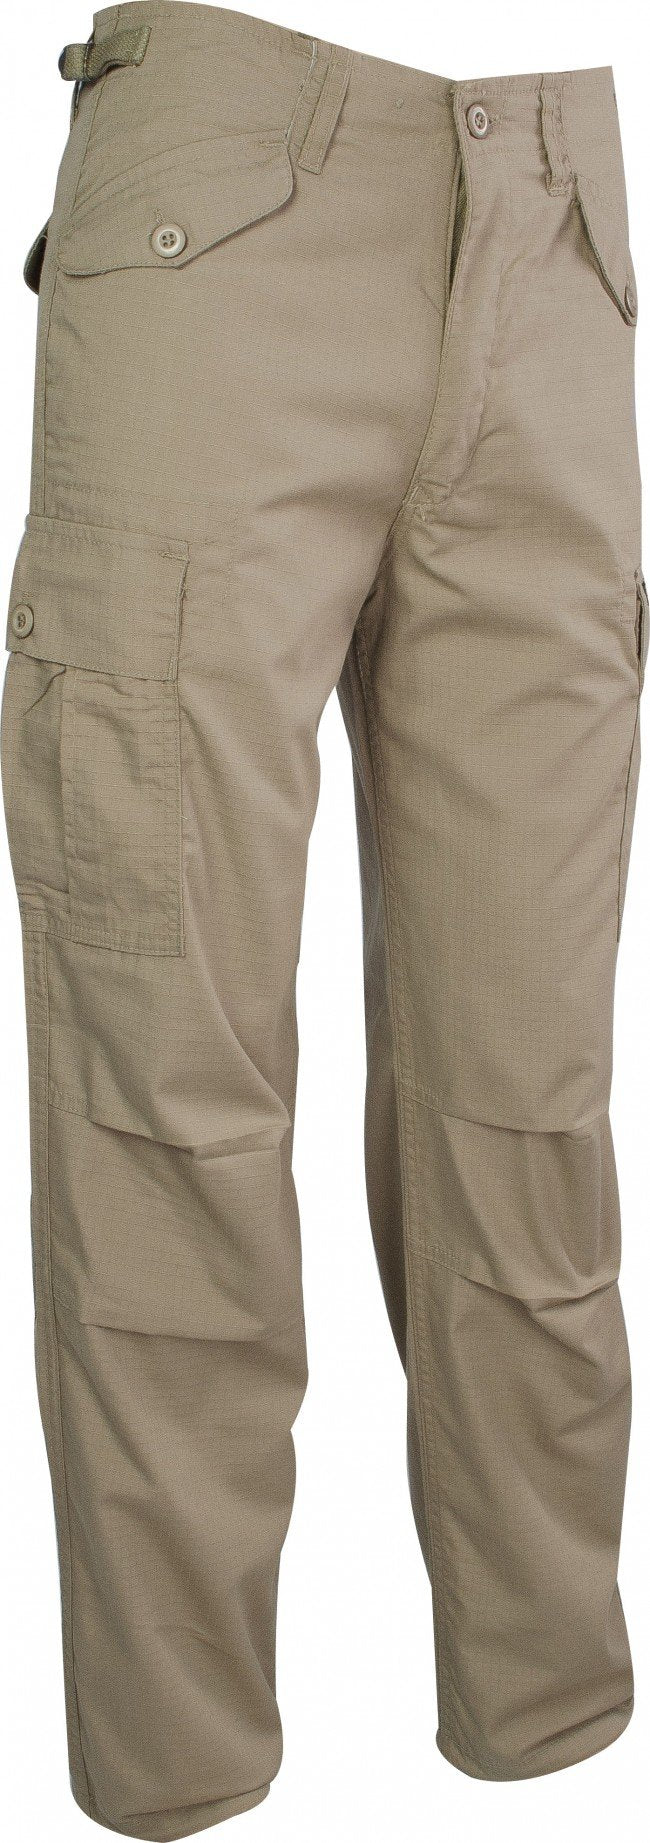 Highlander 'M65' Rip-Stop Cotton Combat Trousers-Highlander-Brodies Angling & Outdoors